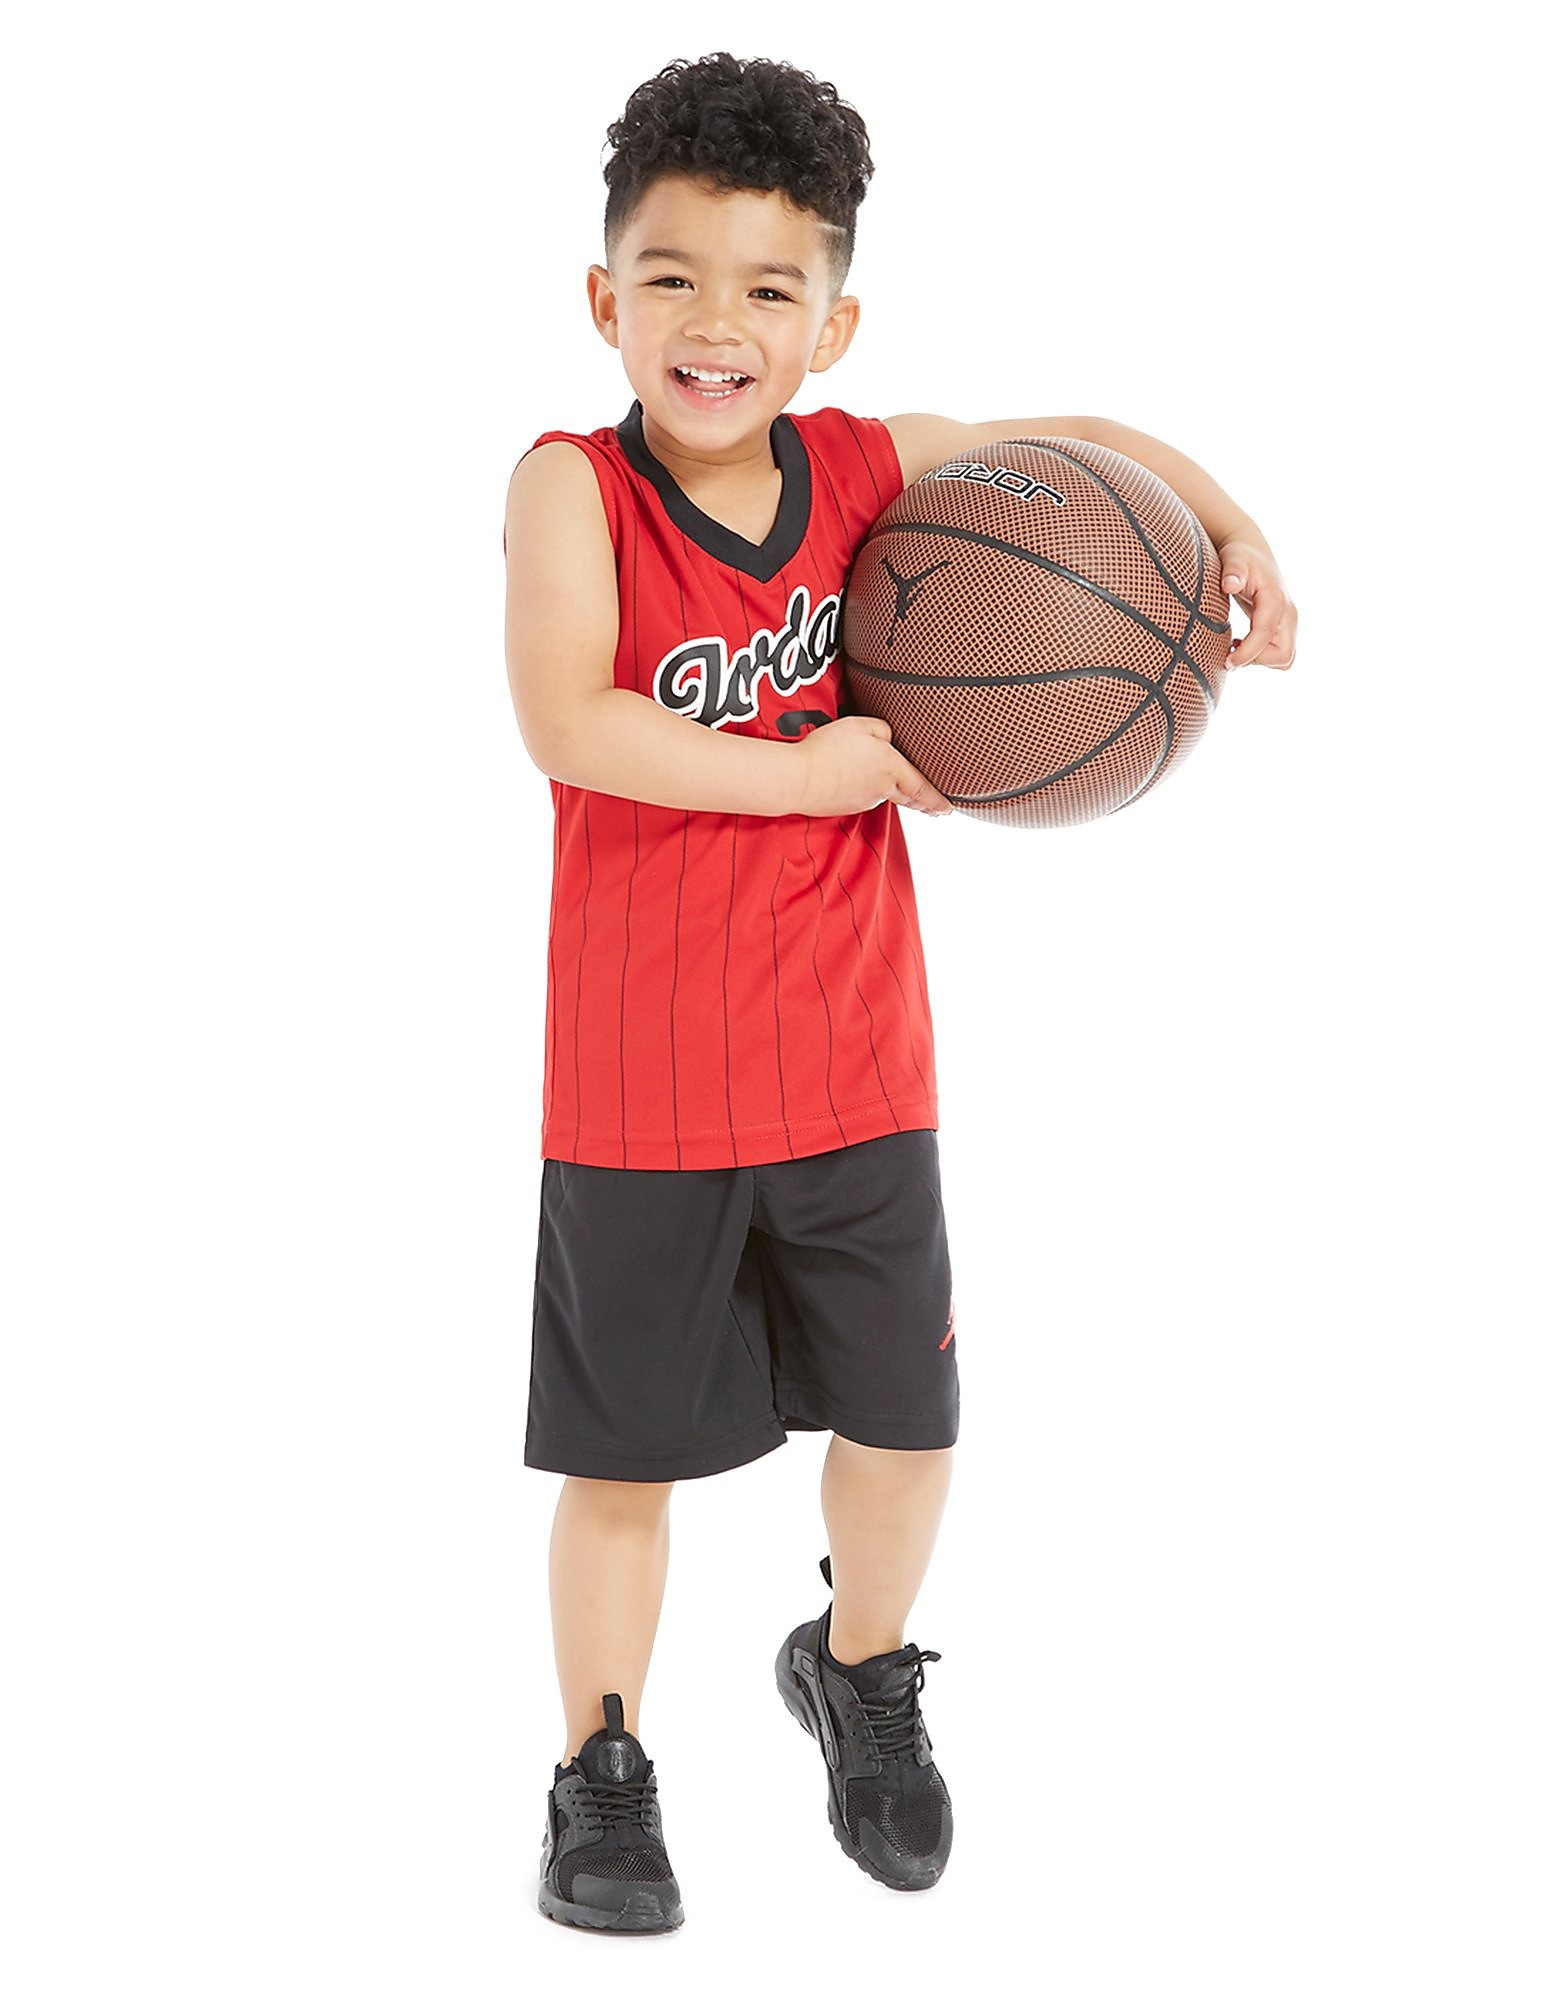 Jordan Ensemble Basketball Enfant